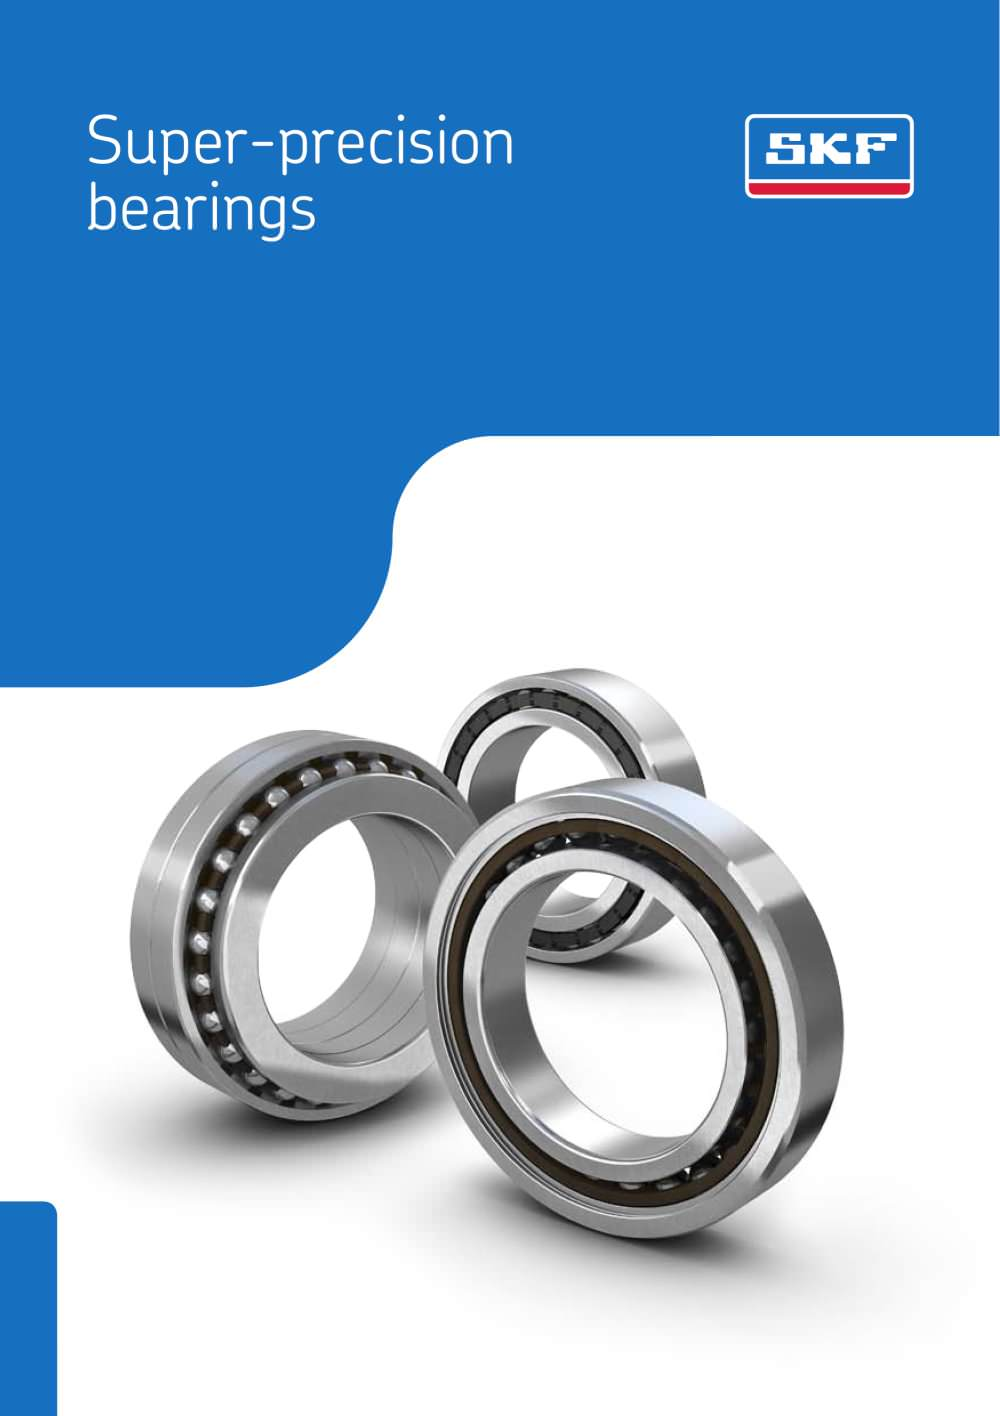 Skf catalogue